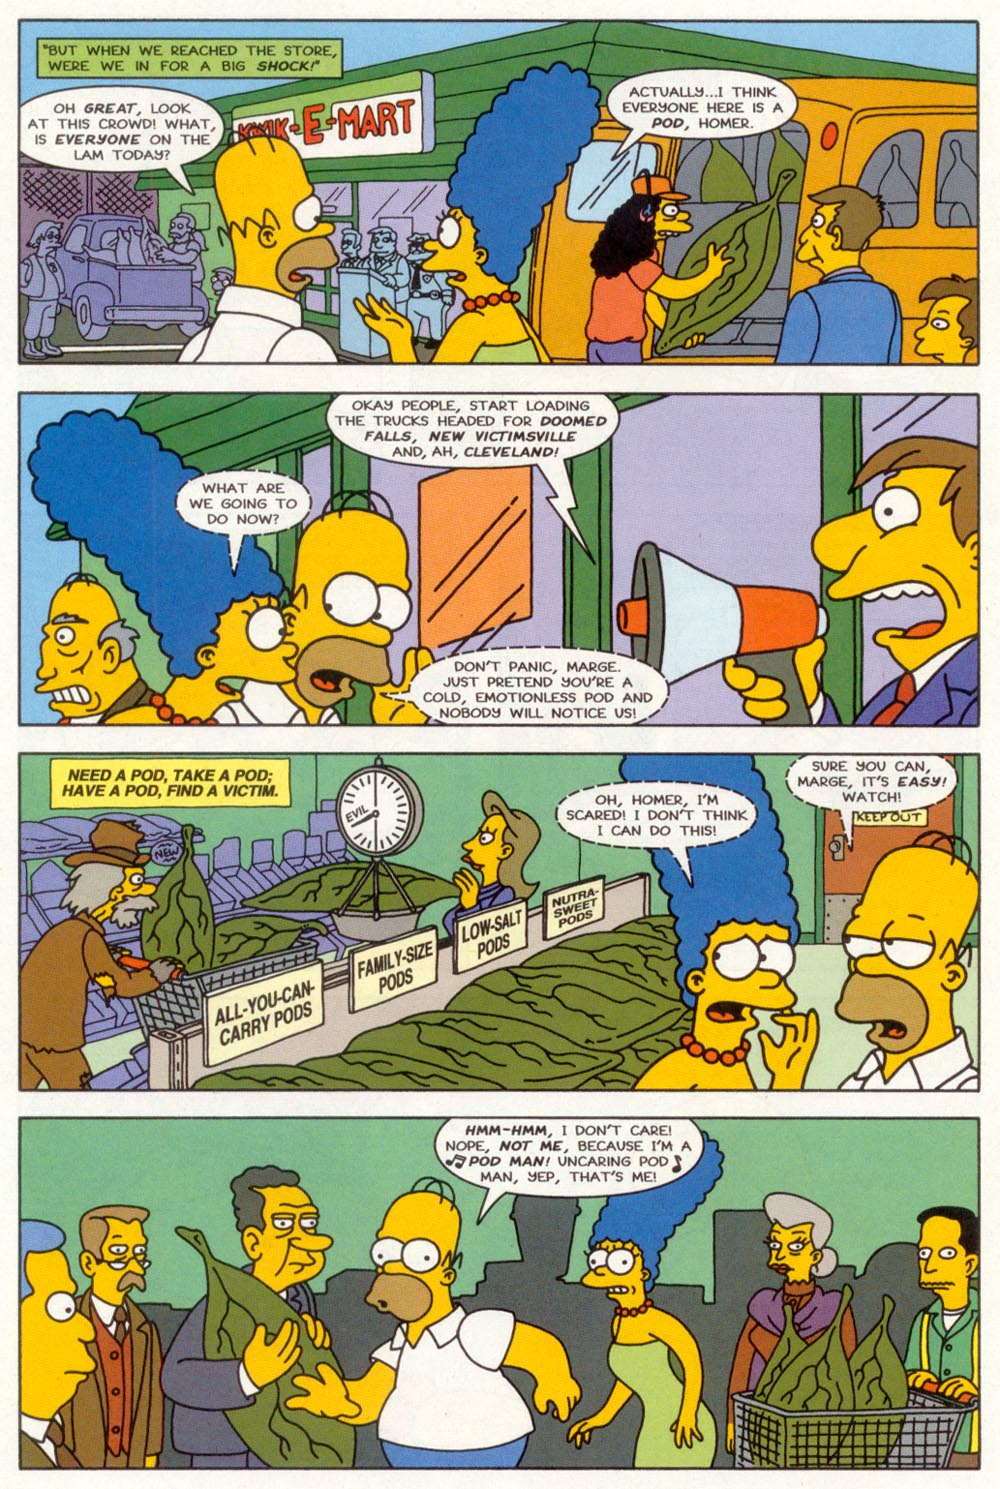 Read online Treehouse of Horror comic -  Issue #3 - 17